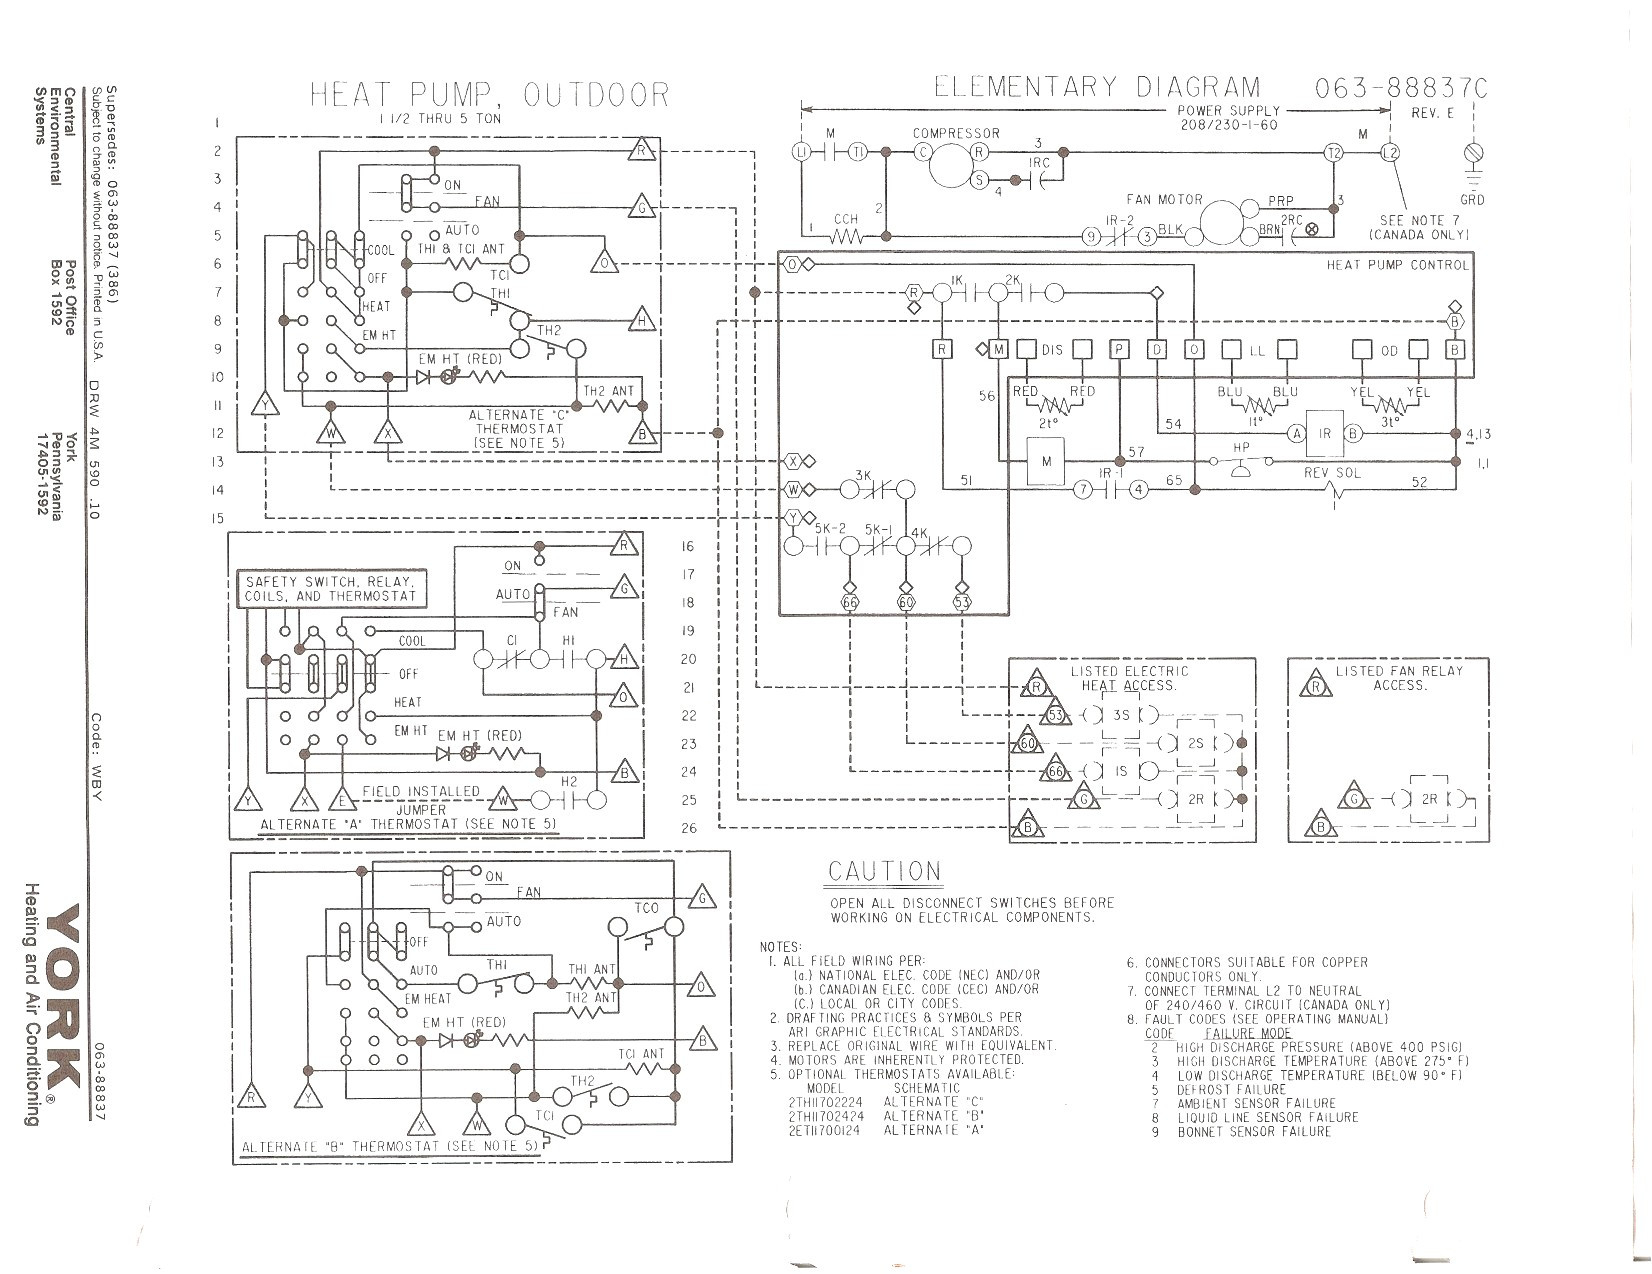 hight resolution of trane xr13 wiring diagram trane xr13 wiring diagram free downloads contemporary trane wiring diagram ponent